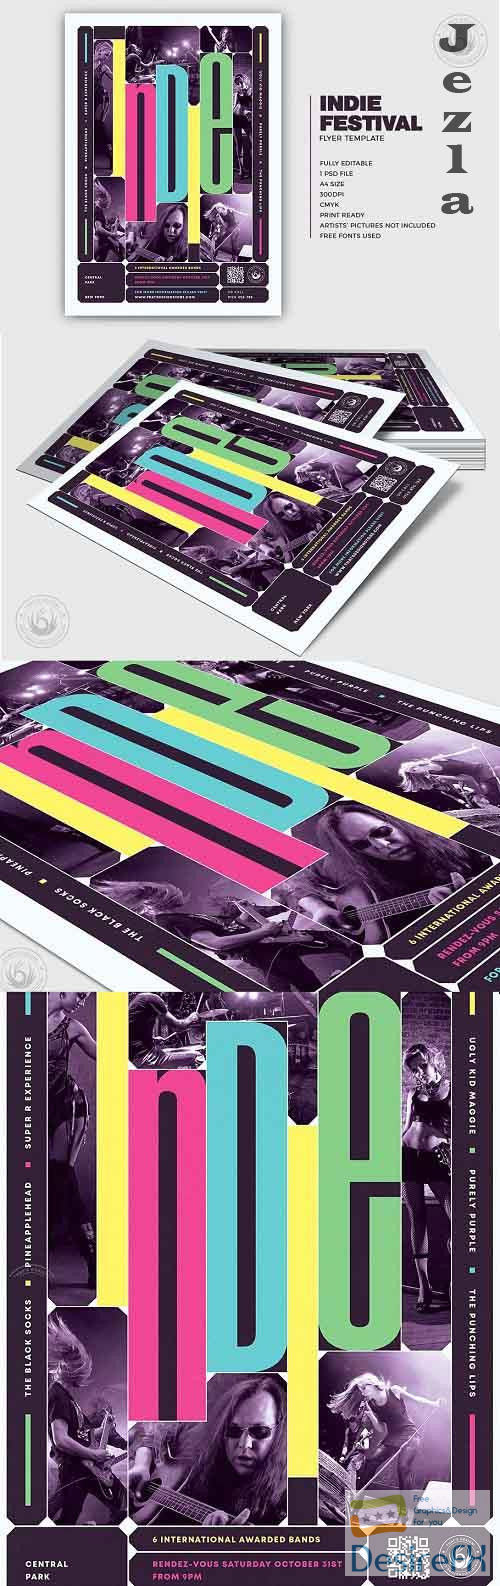 Indie Fest Flyer Template V10 - 5340976